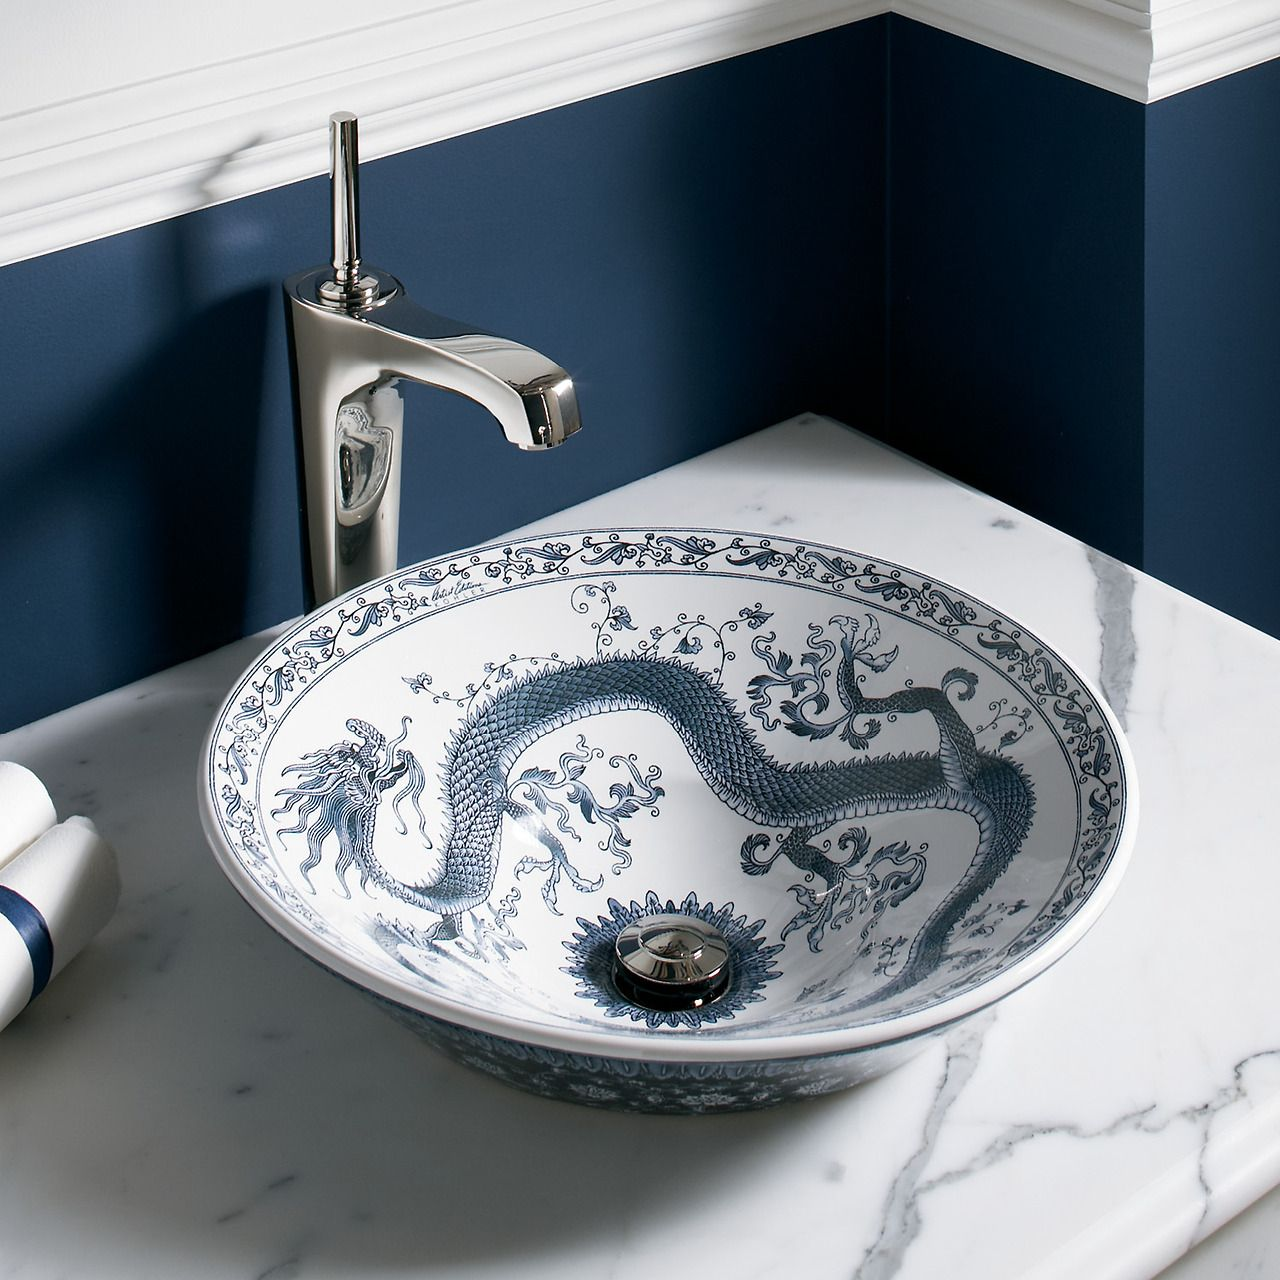 How Cool Is This Imperial Blue Chinese Dragon Sink By Kohler